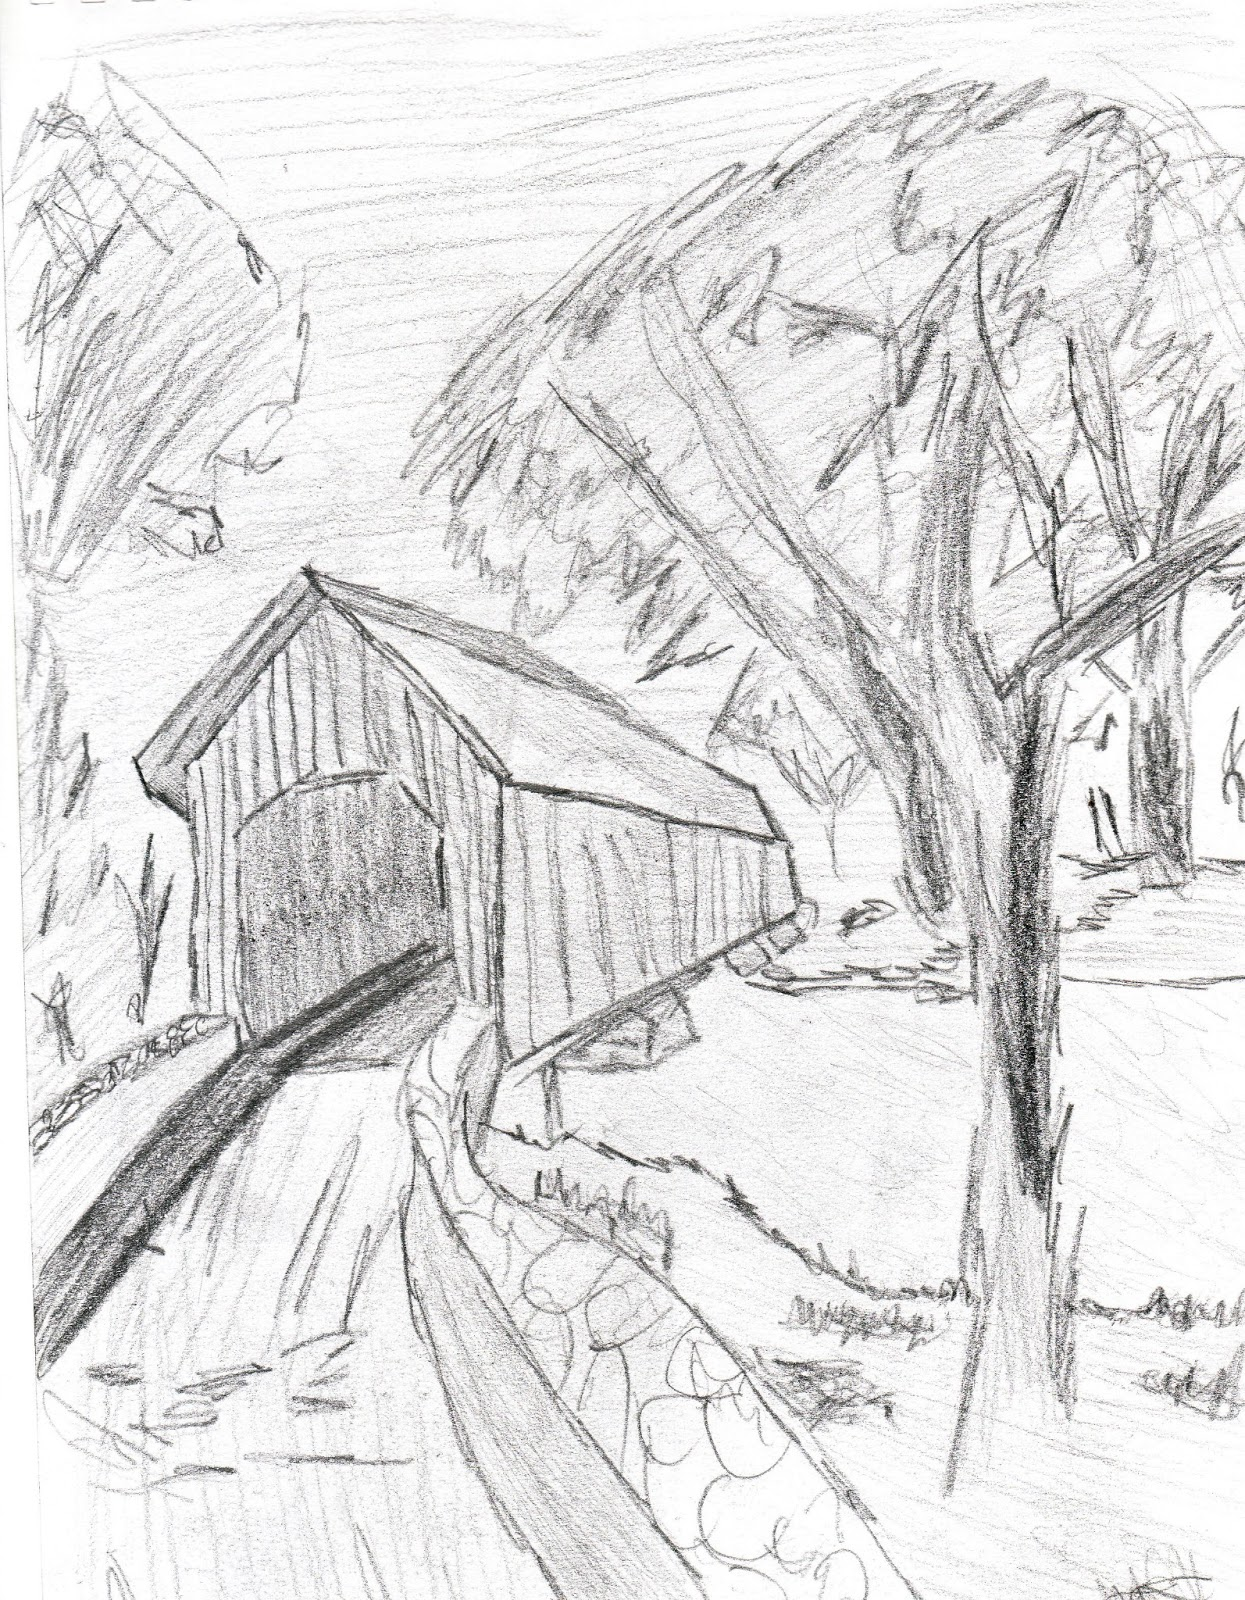 Mihai stan 39 s media landscape drawing for What is landscape drawing